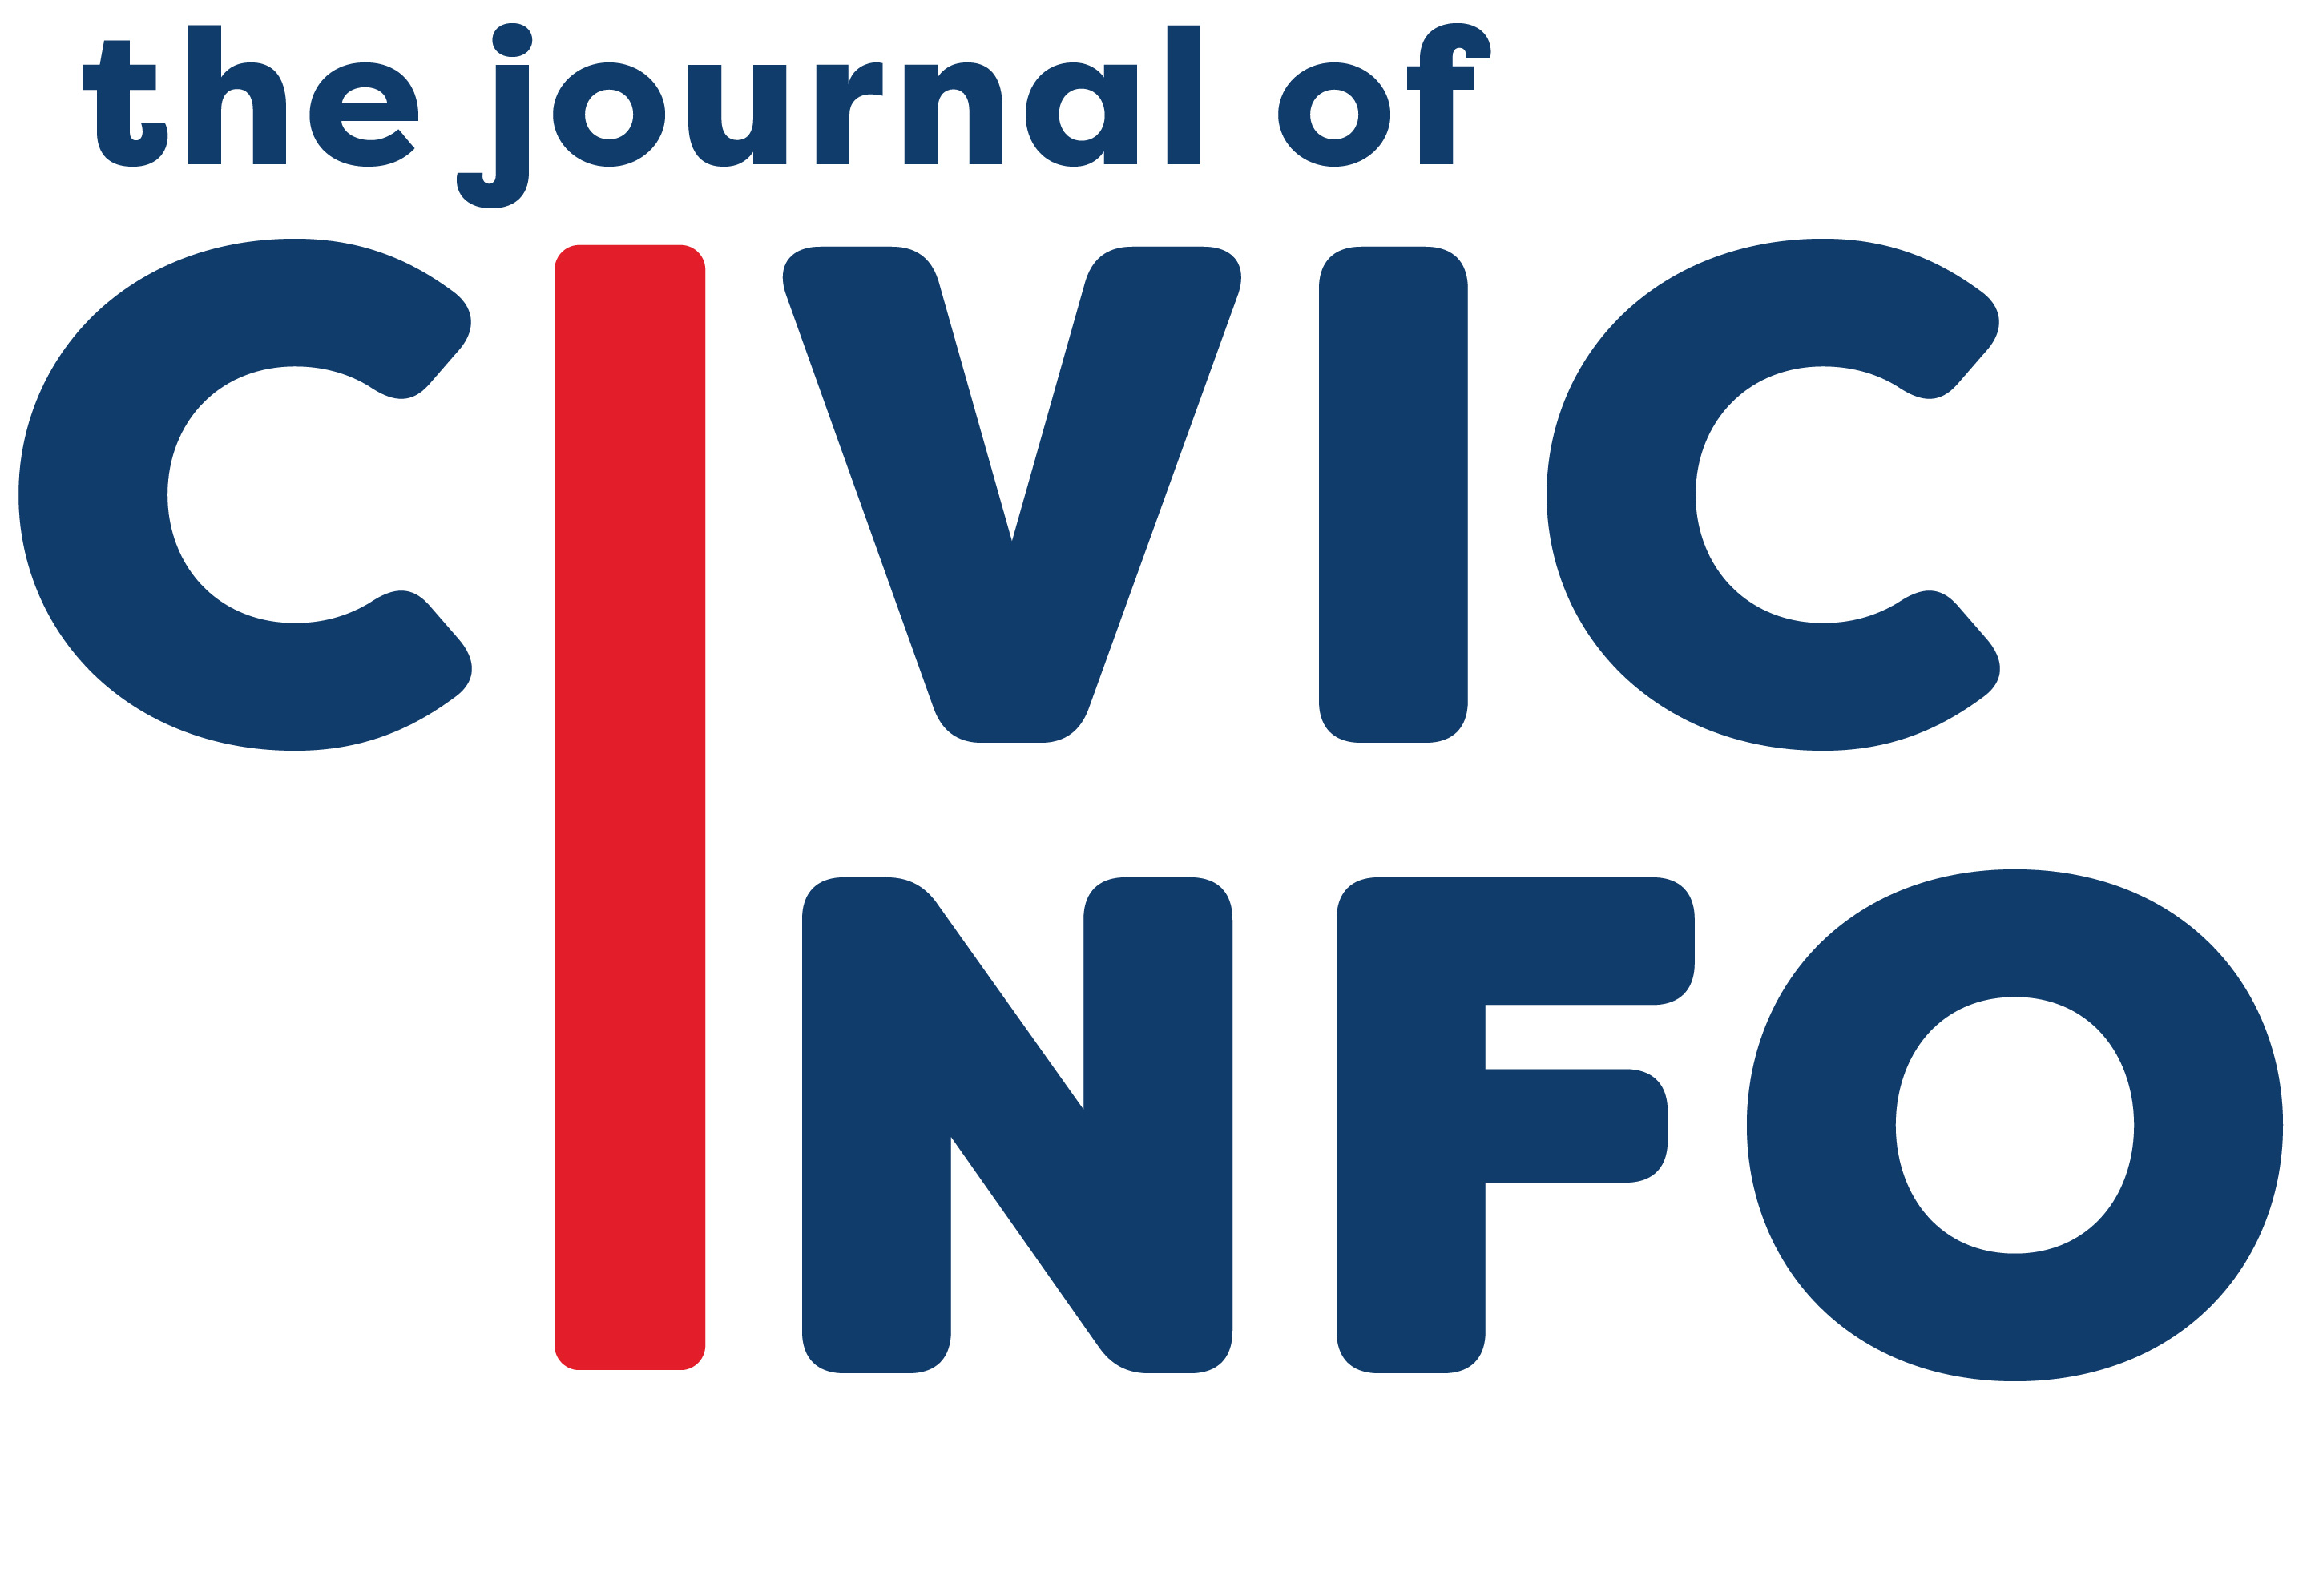 The Journal of Civic Information